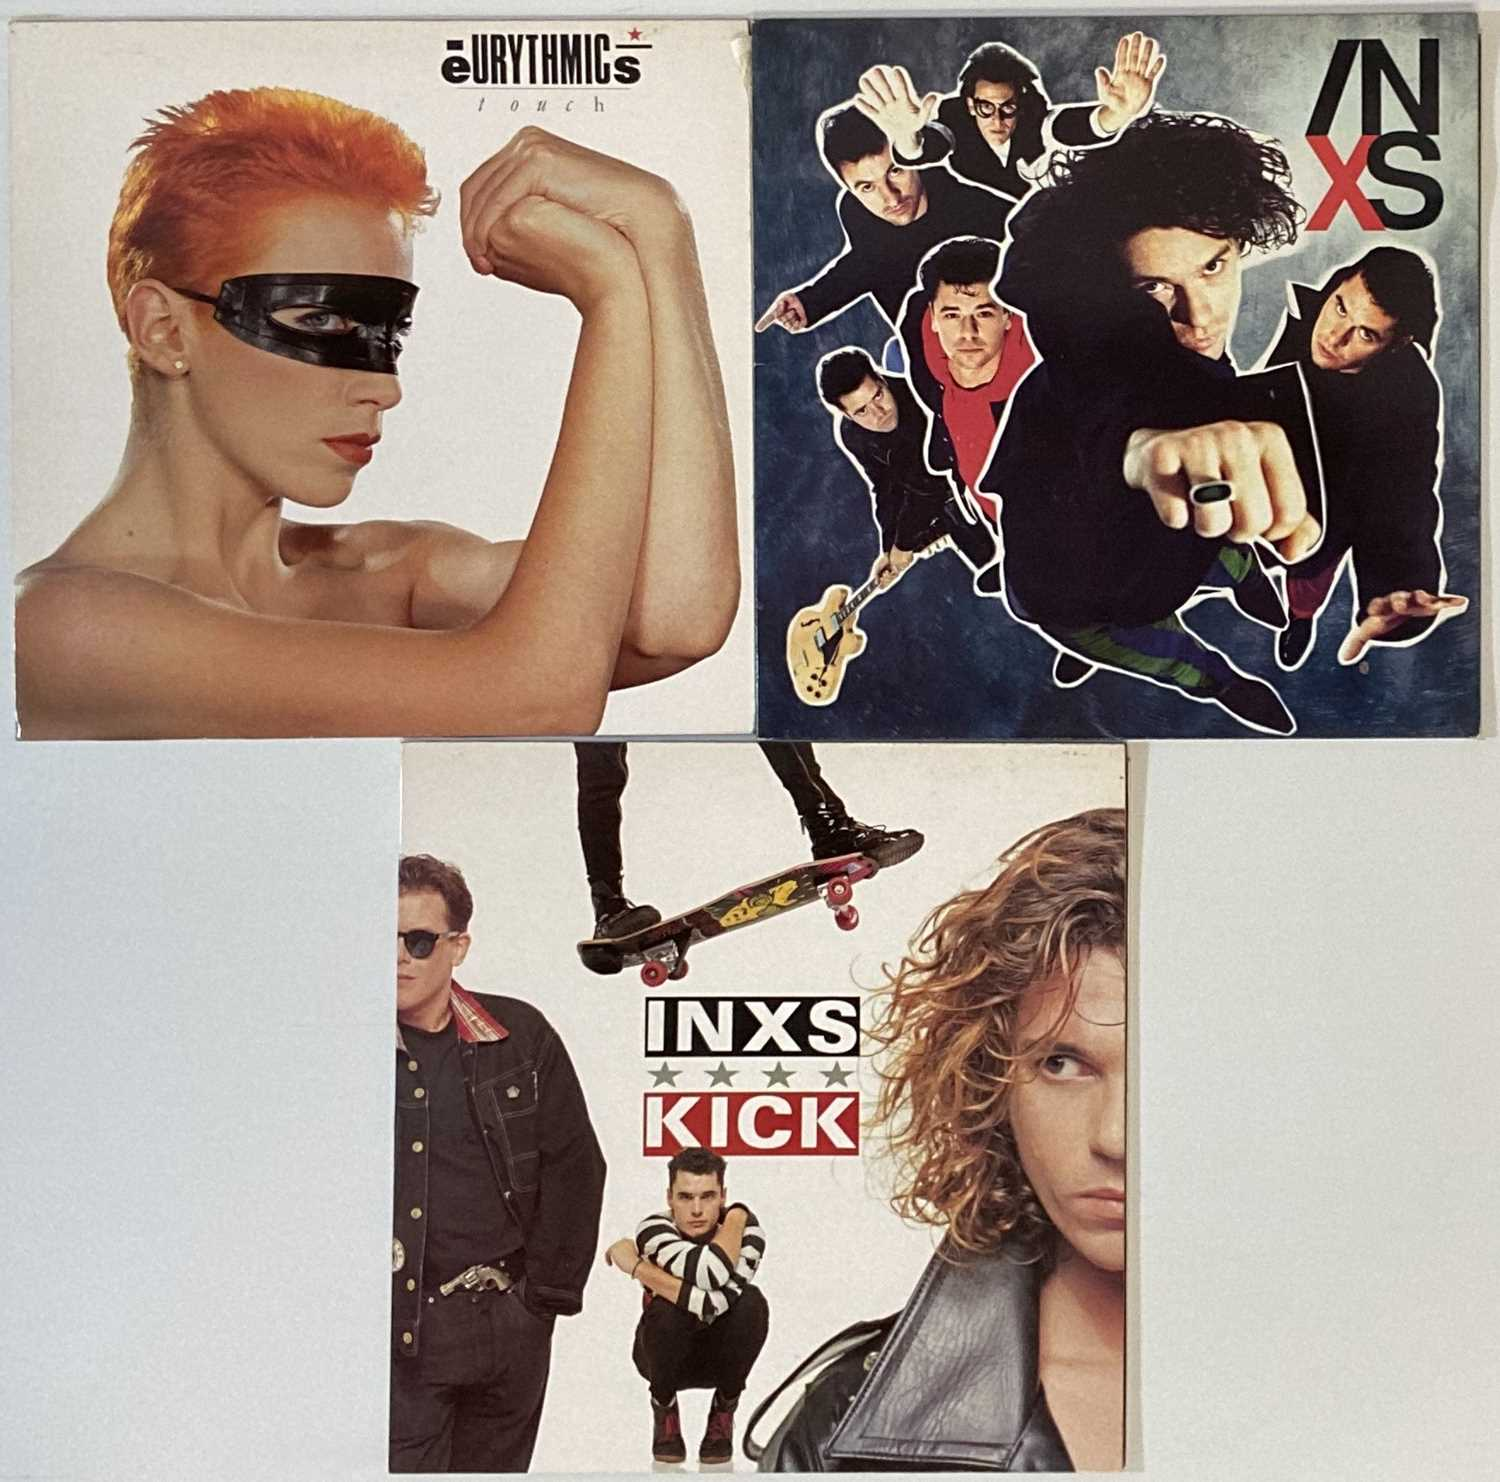 PUNK/INDIE/NEW-WAVE/COOL POP – LPs - Image 5 of 5